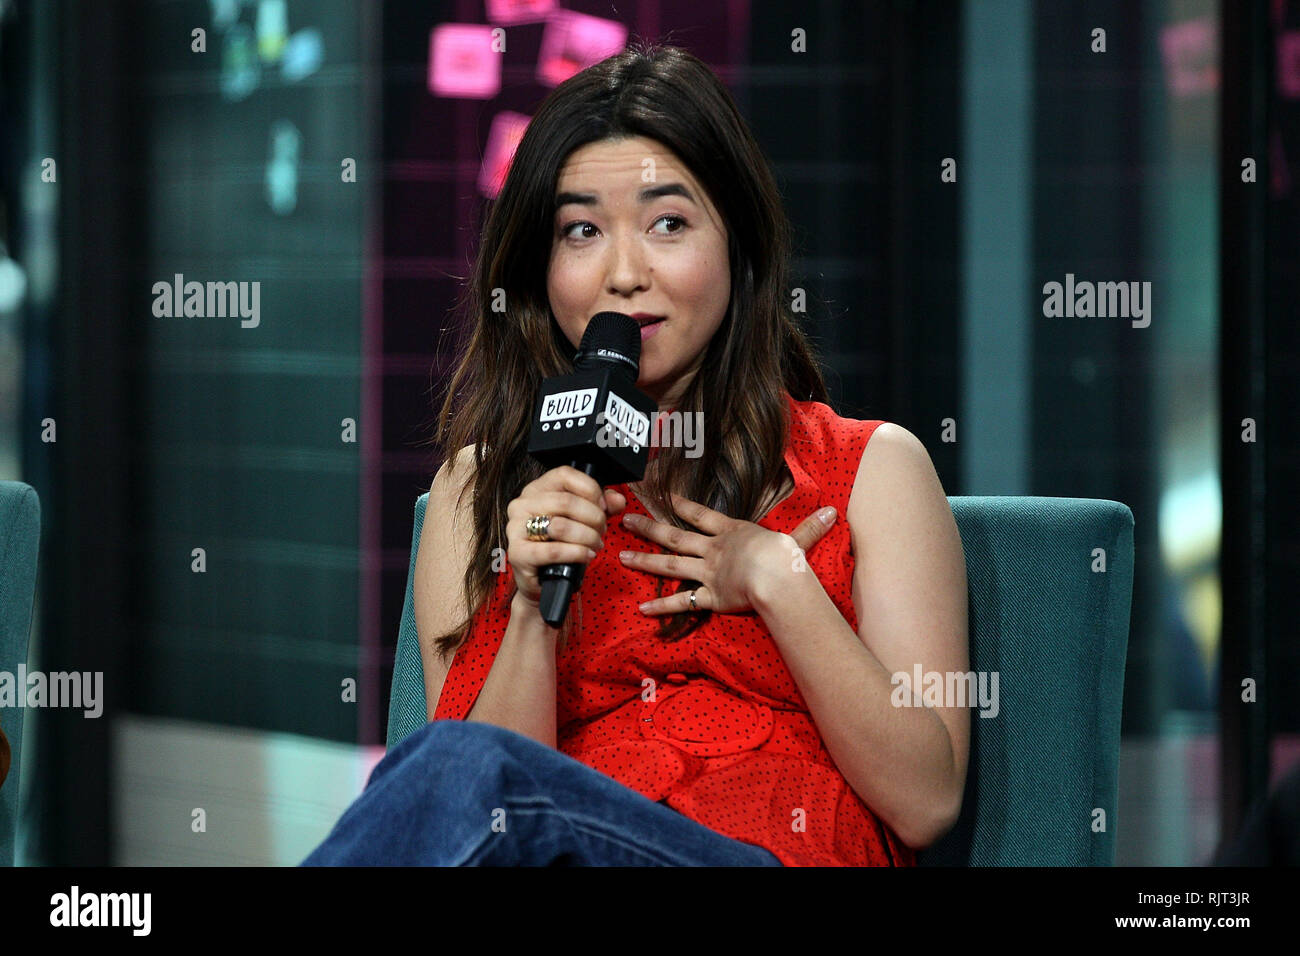 New York, USA. 07 Feb, 2019. Maya Erskine visits The Thursday, Feb 7, 2019 BUILD Series Inside Candids discussing 'Pen15' at BUILD Studio in New York, USA. Credit: Steve Mack/S.D. Mack Pictures/Alamy Live News - Stock Image